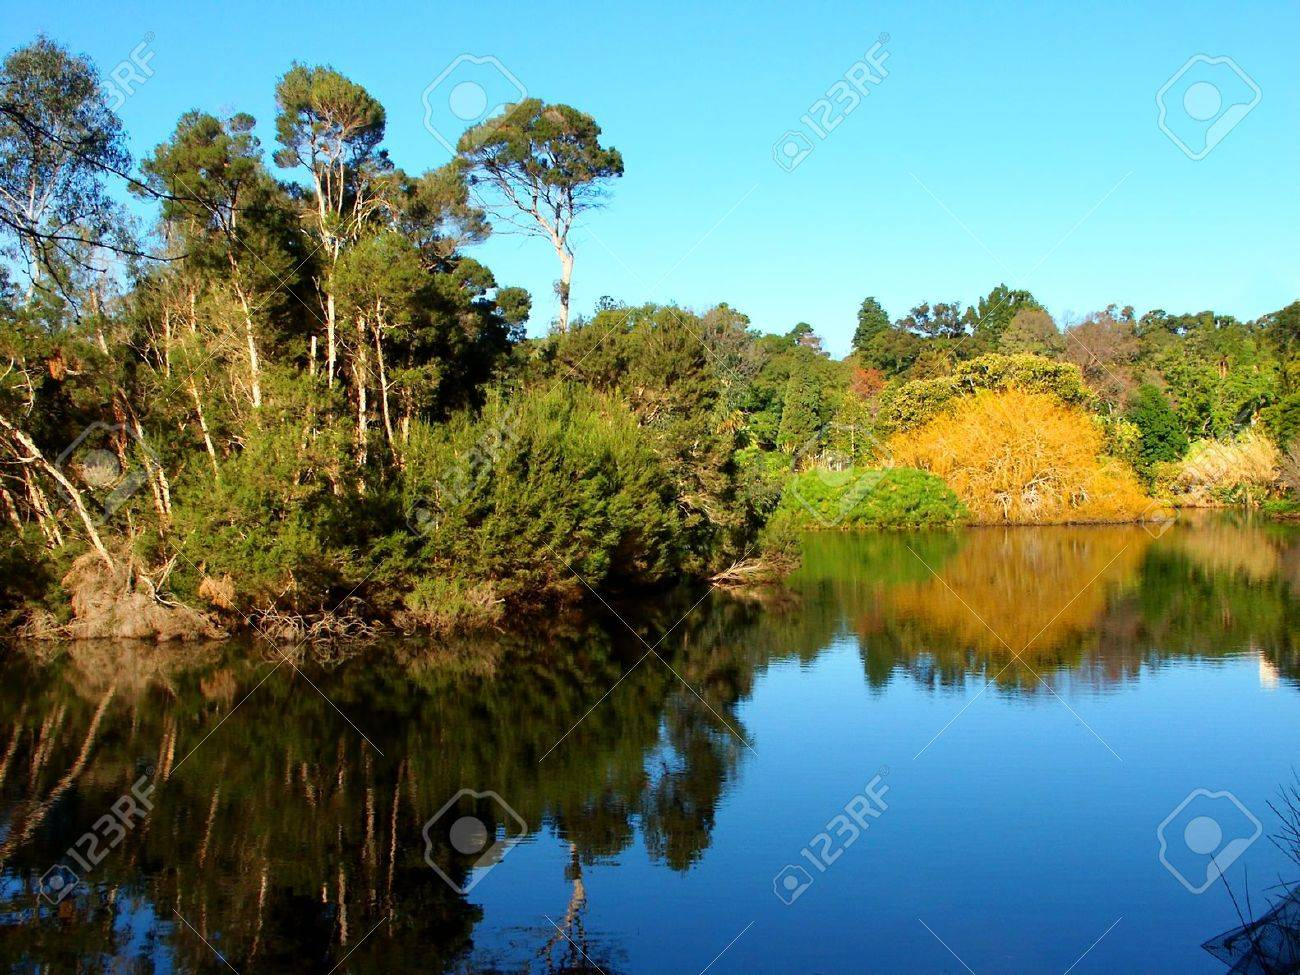 Lake in the Royal Botanic Gardens of Melbourne Australia Stock Photo - 16556975